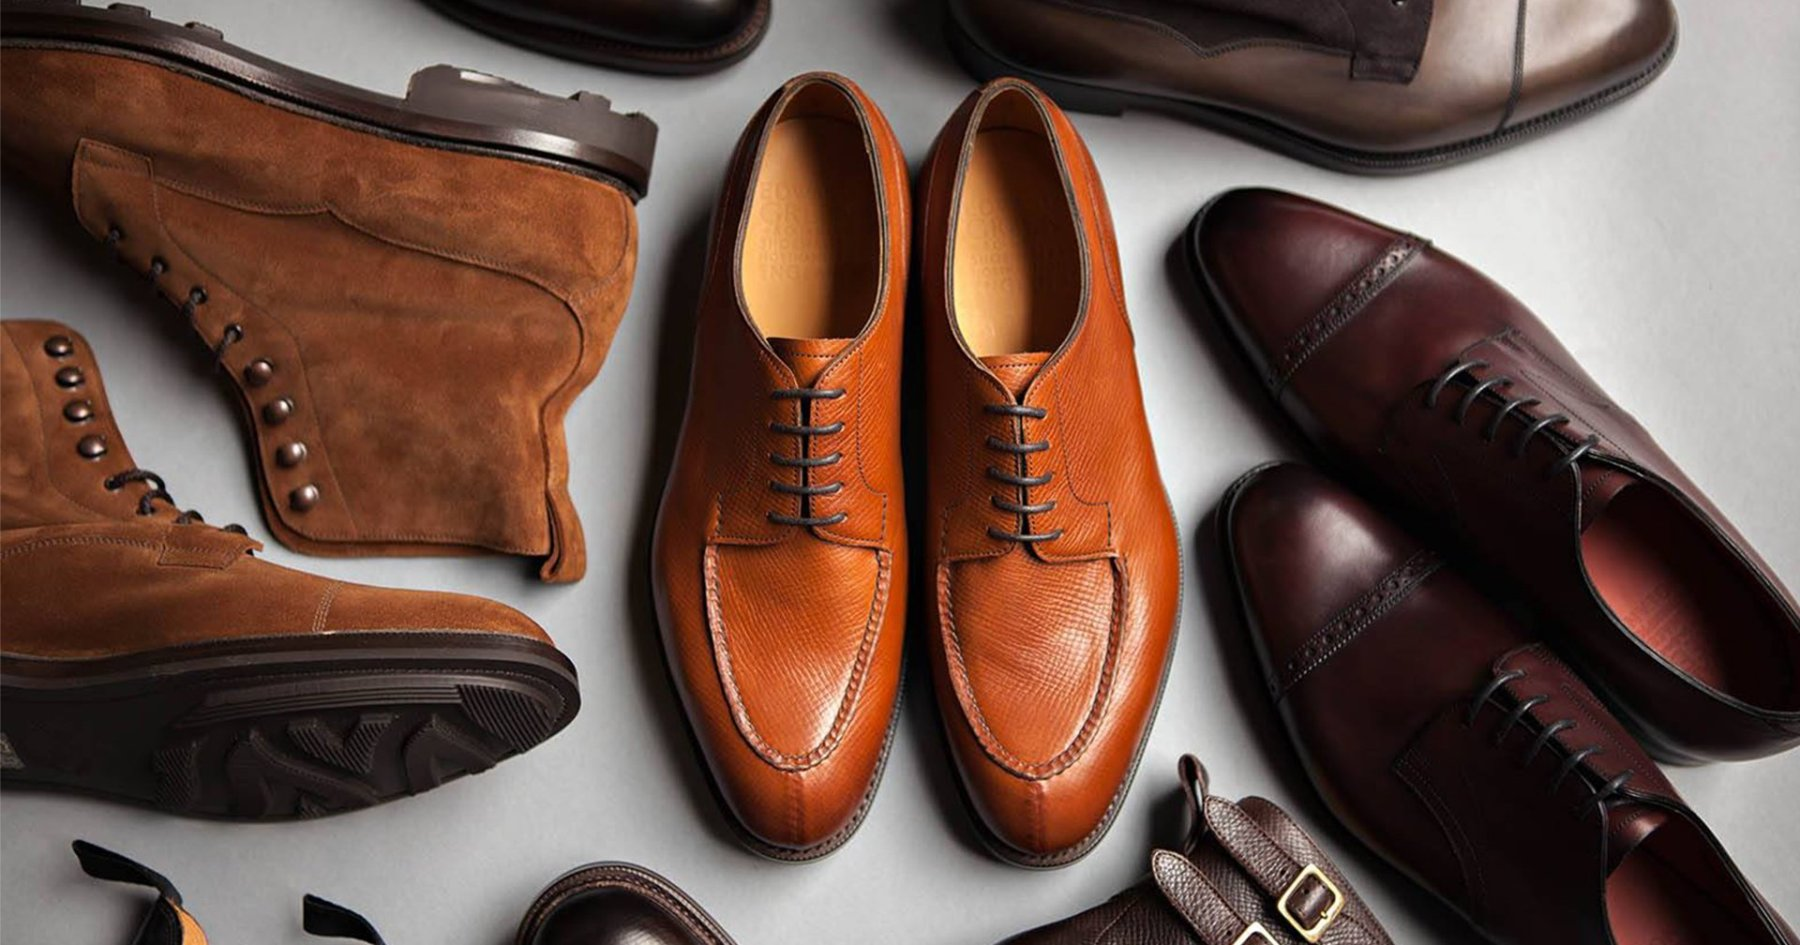 A Tiny Shop That Carries One Thing: the Finest Shoes In the World